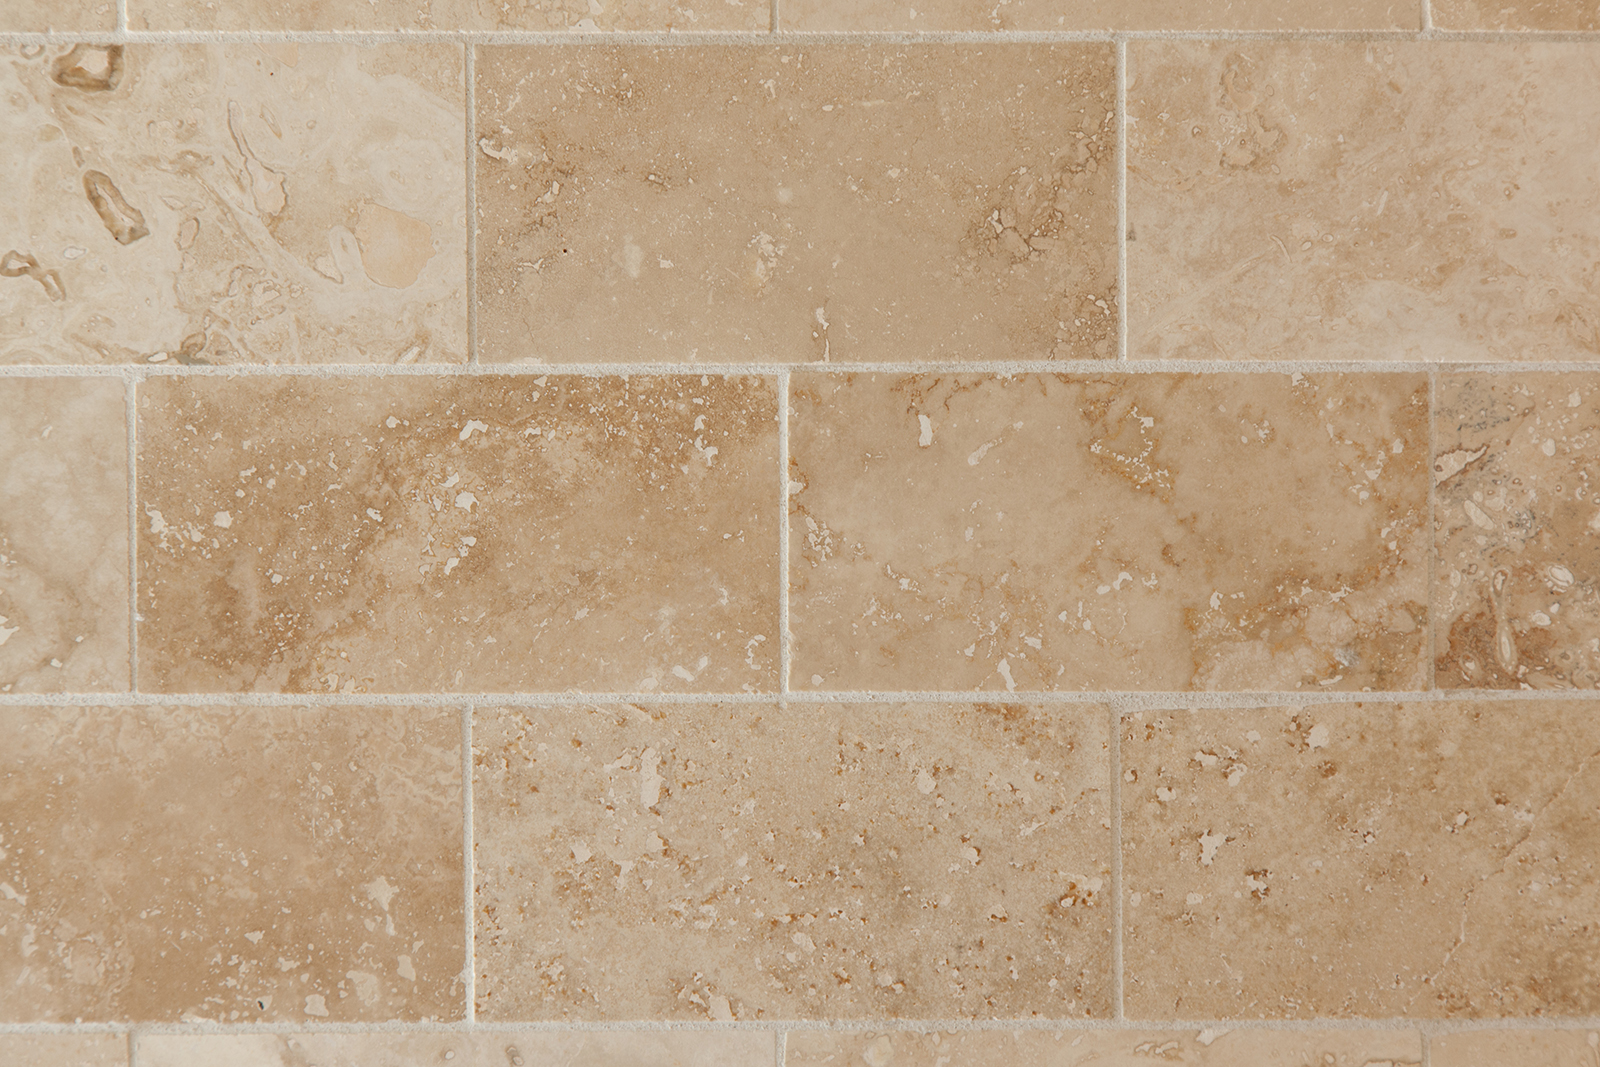 Bathroom Floor Tiles Natural Stone : Amazing pictures and ideas of the best natural stone tile for bathroom